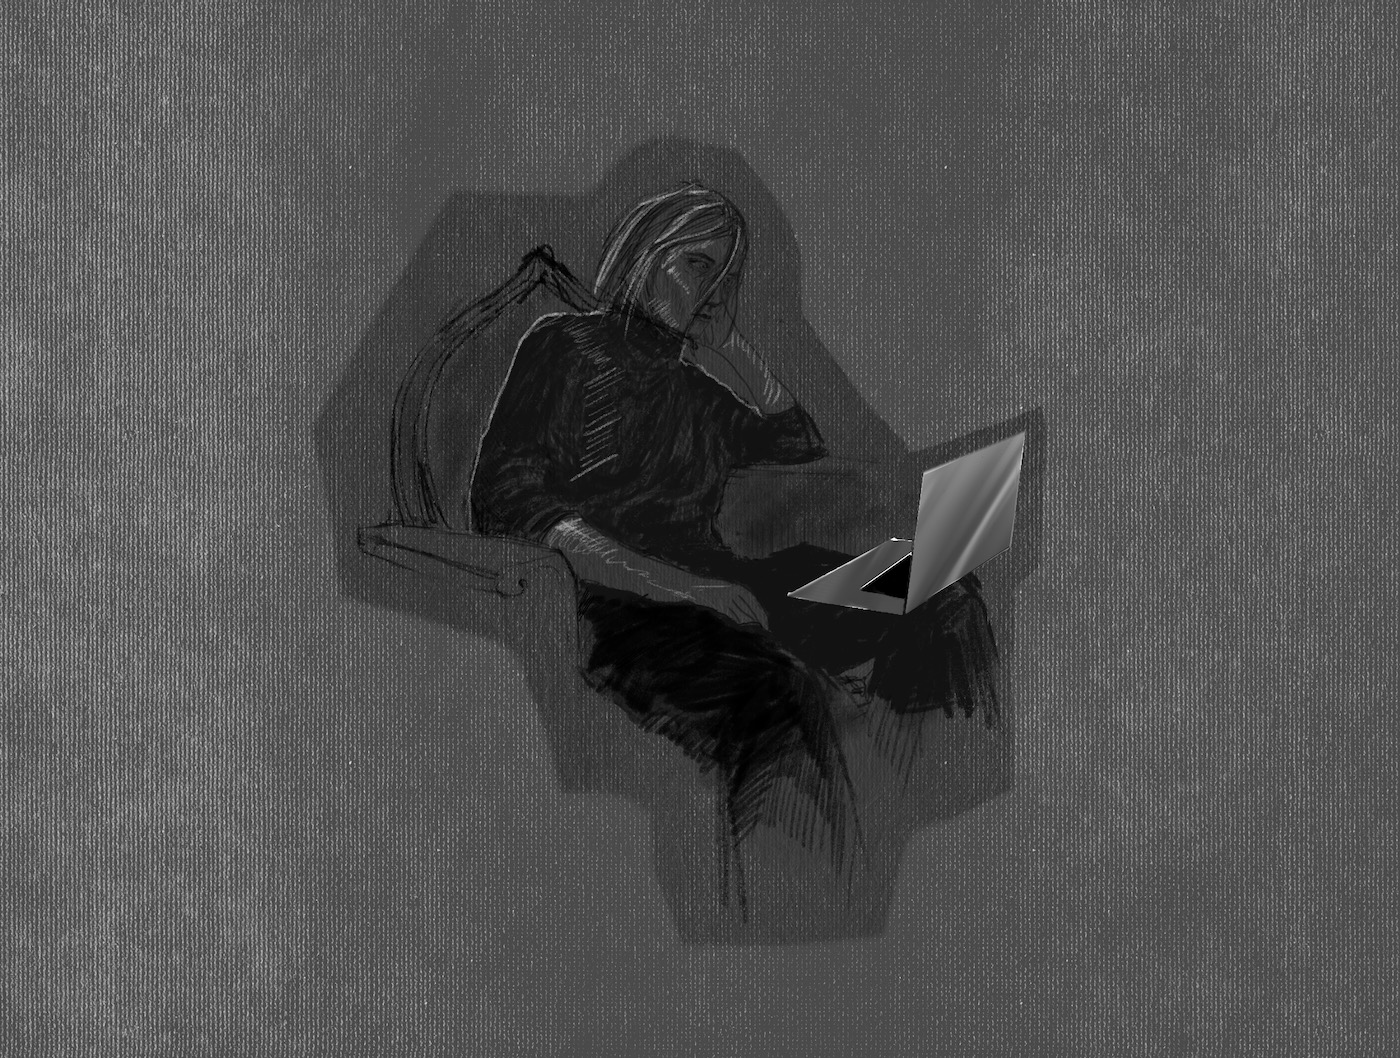 Drawing by Viktoriia Shcherbak of woman with laptop.